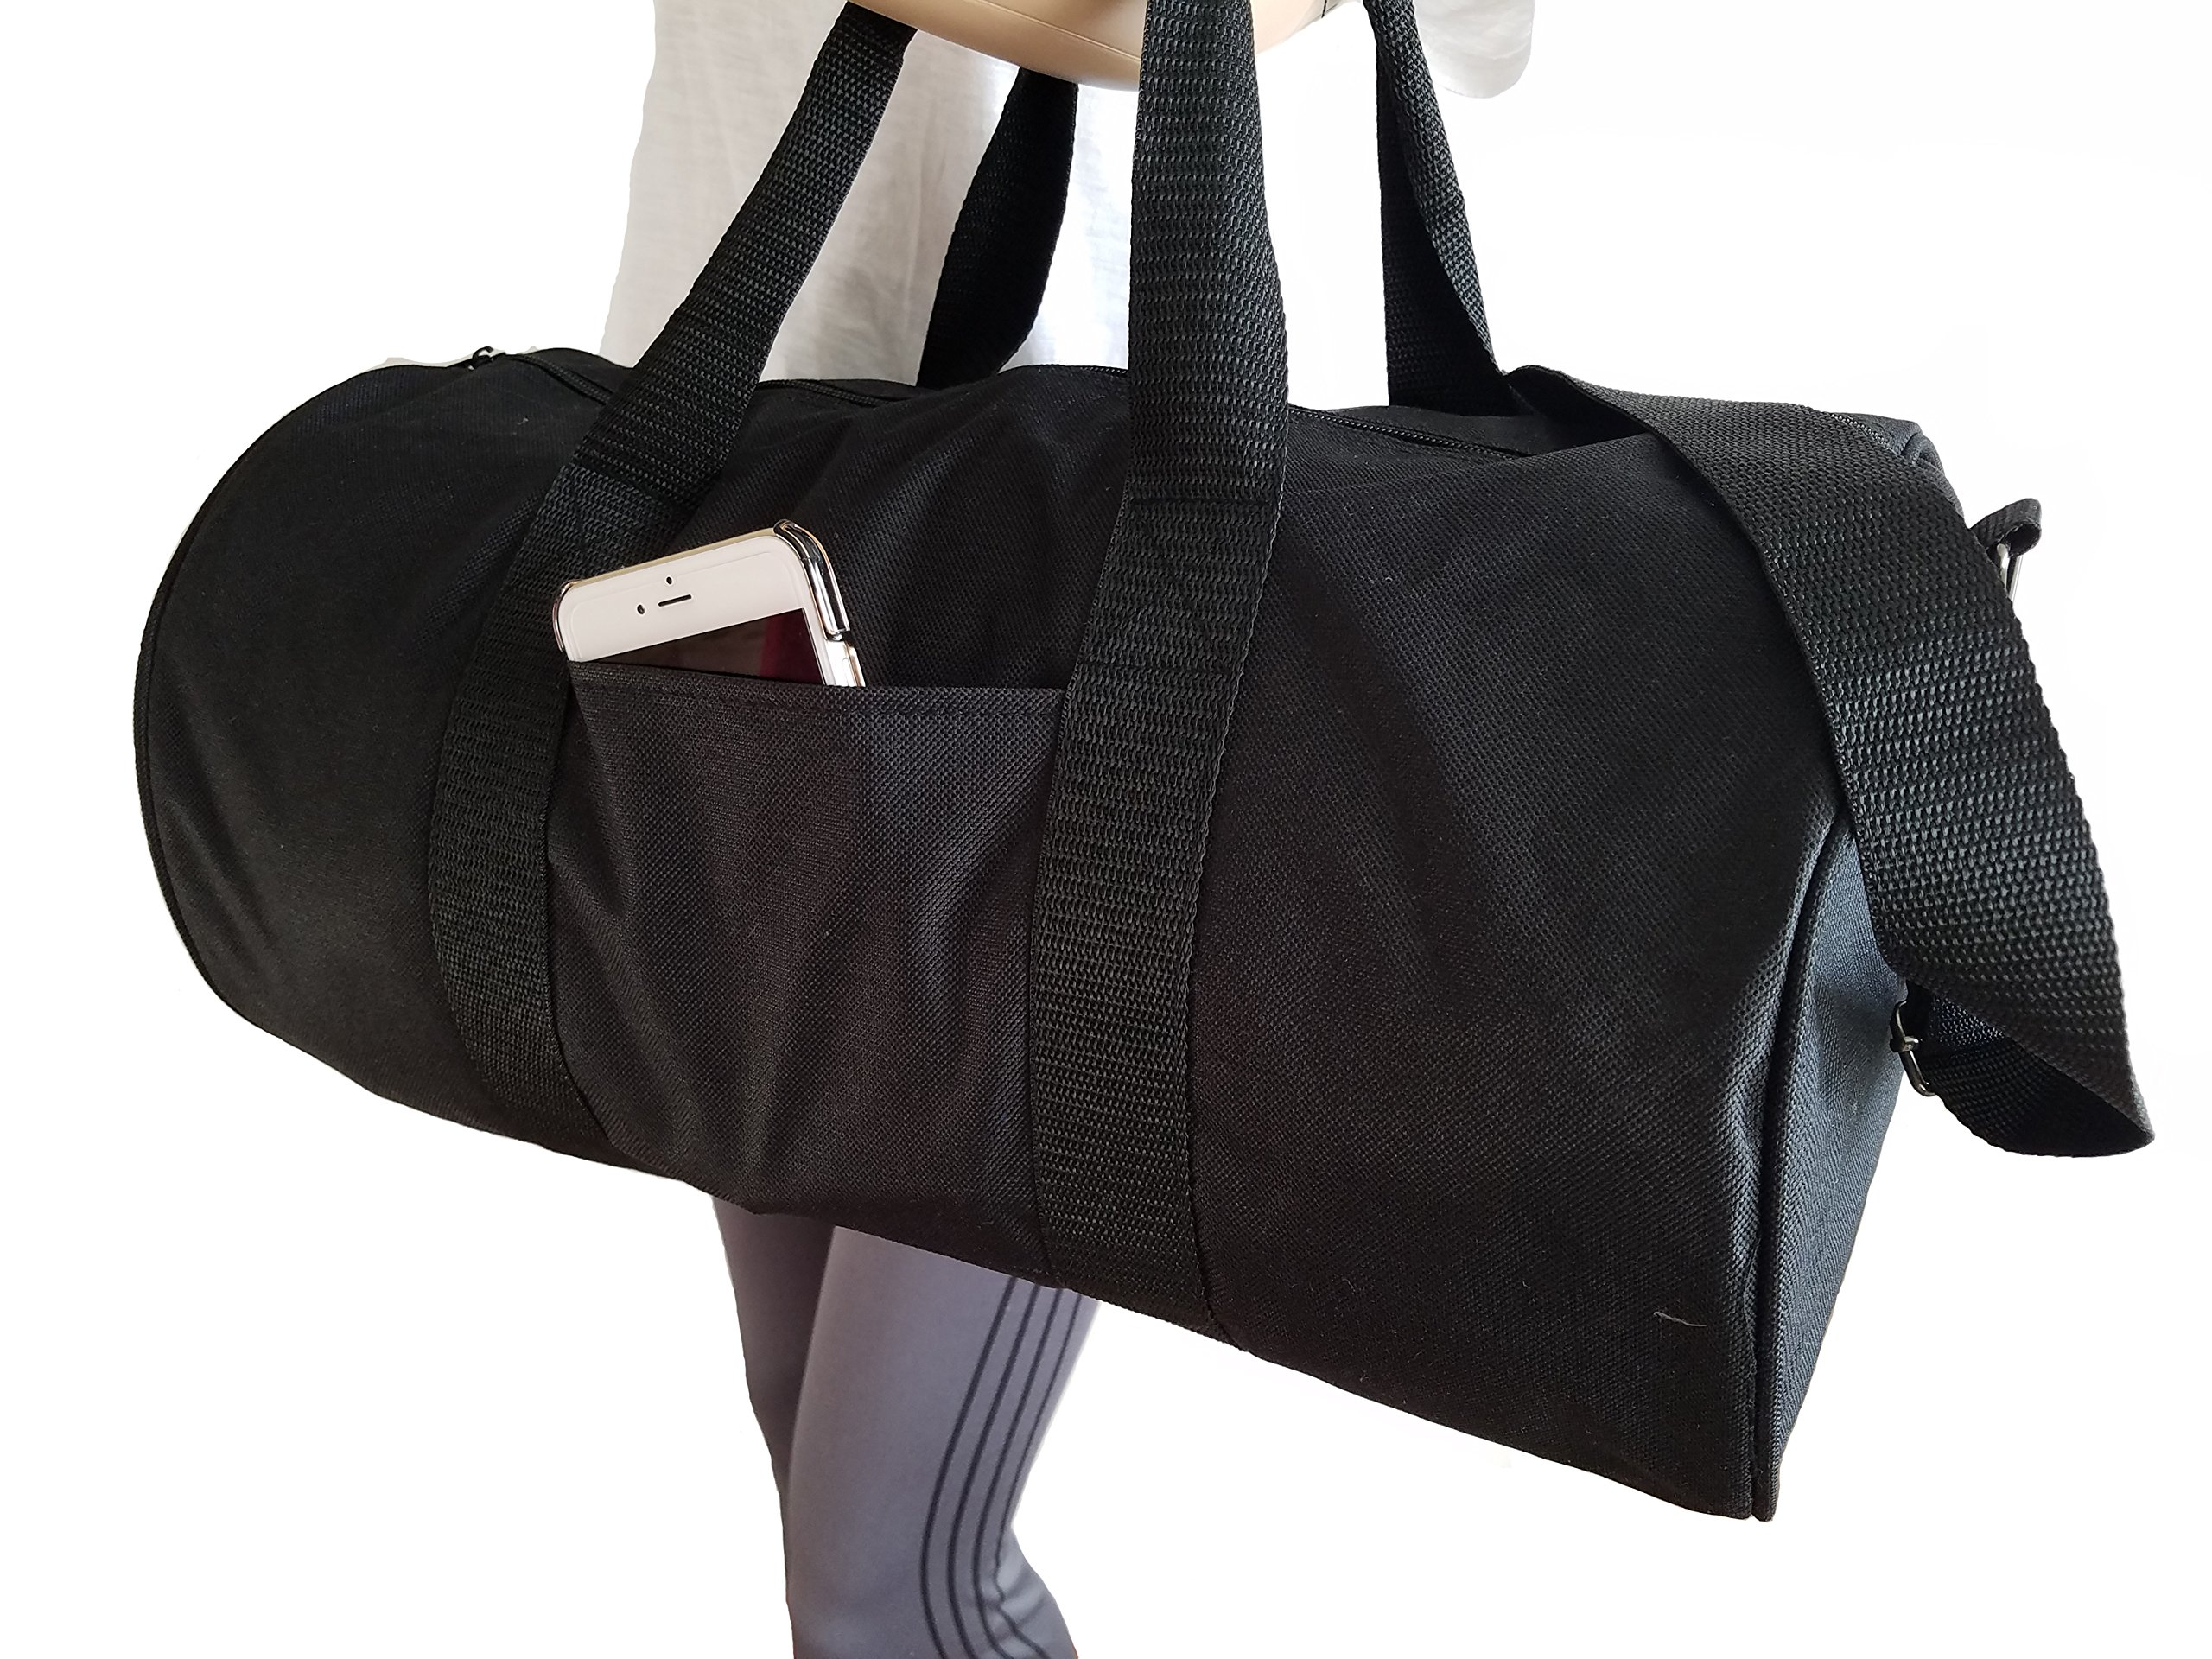 ImpecGear Round Duffel Sports Bags, Travel Gym Fitness Bag. (Navy) by ImpecGear (Image #8)